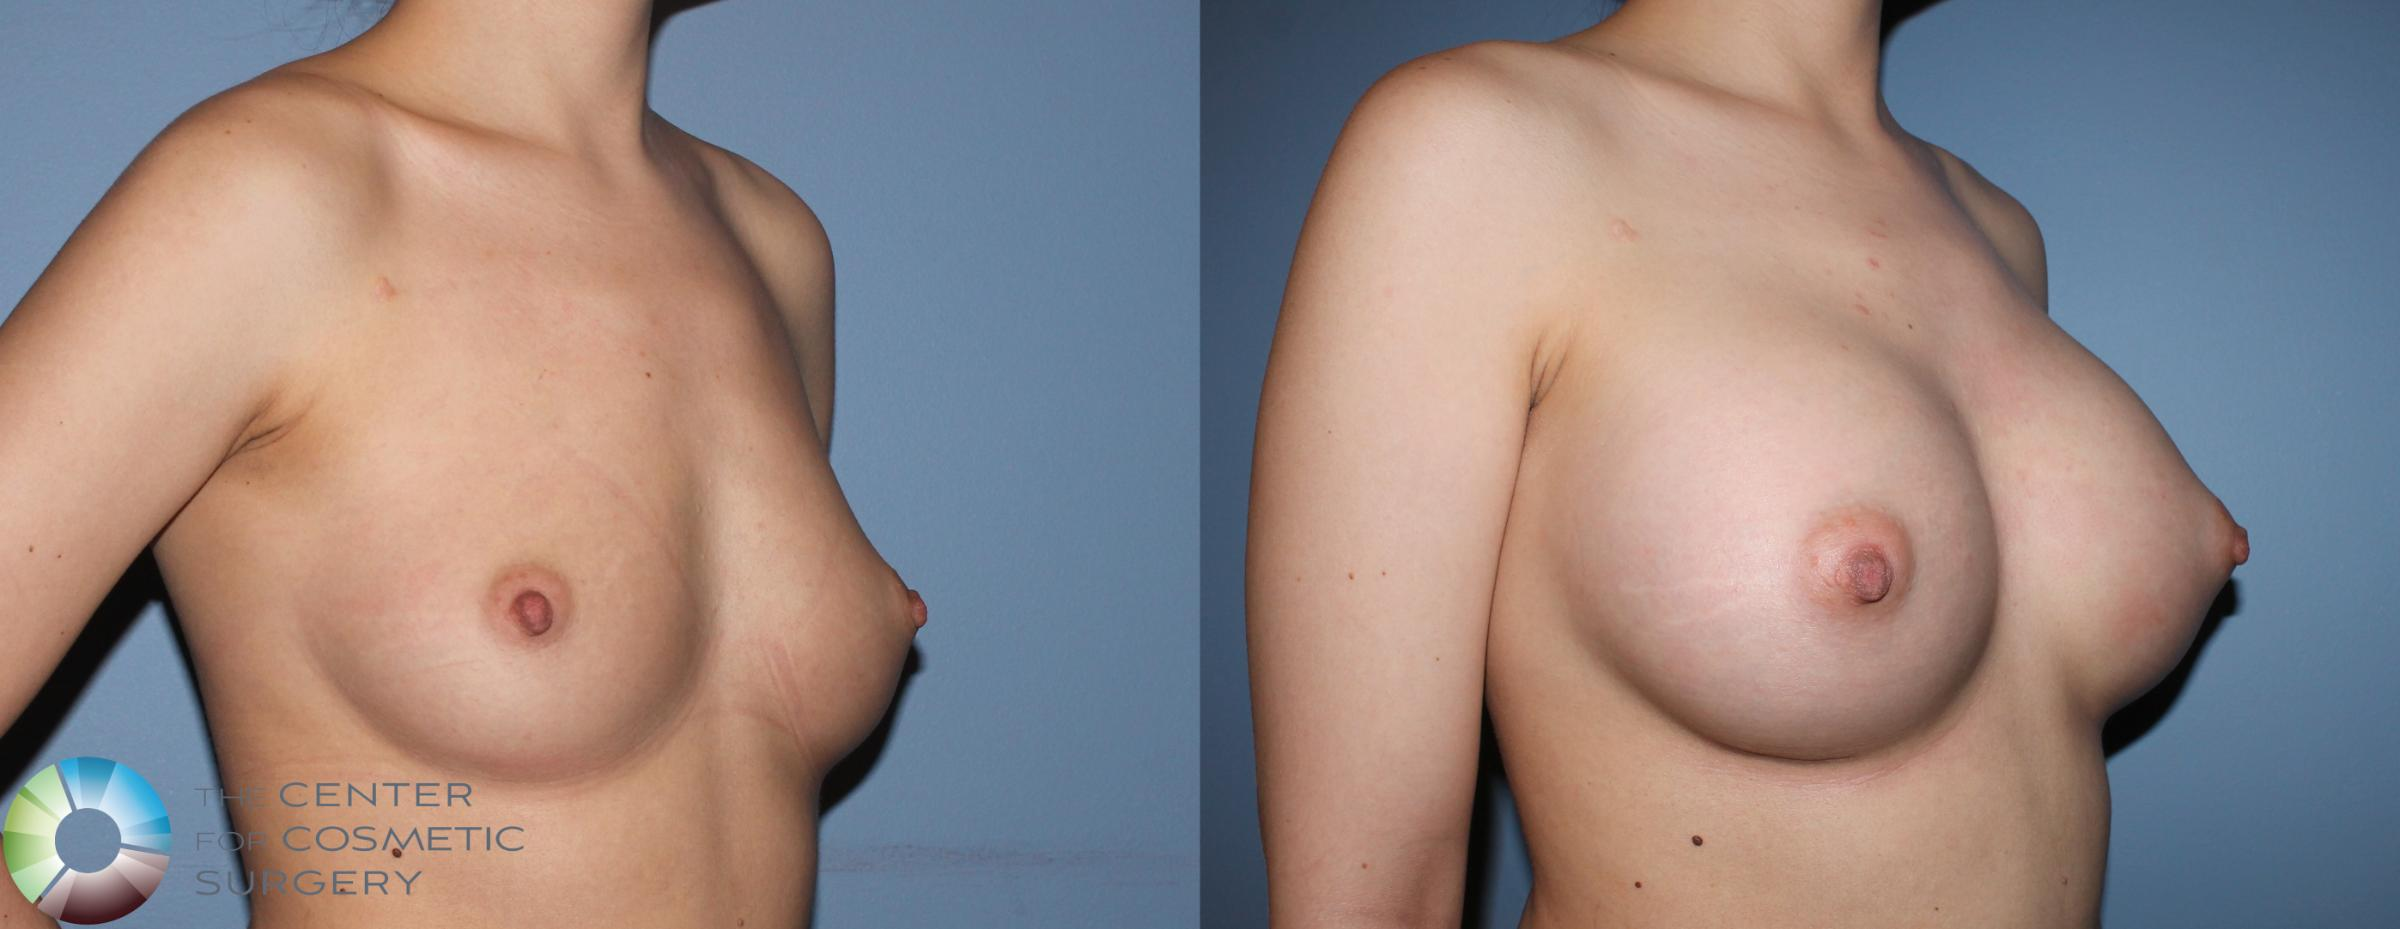 Breast Augmentation Case 837 Before & After View #1 | Golden, CO | The Center for Cosmetic Surgery